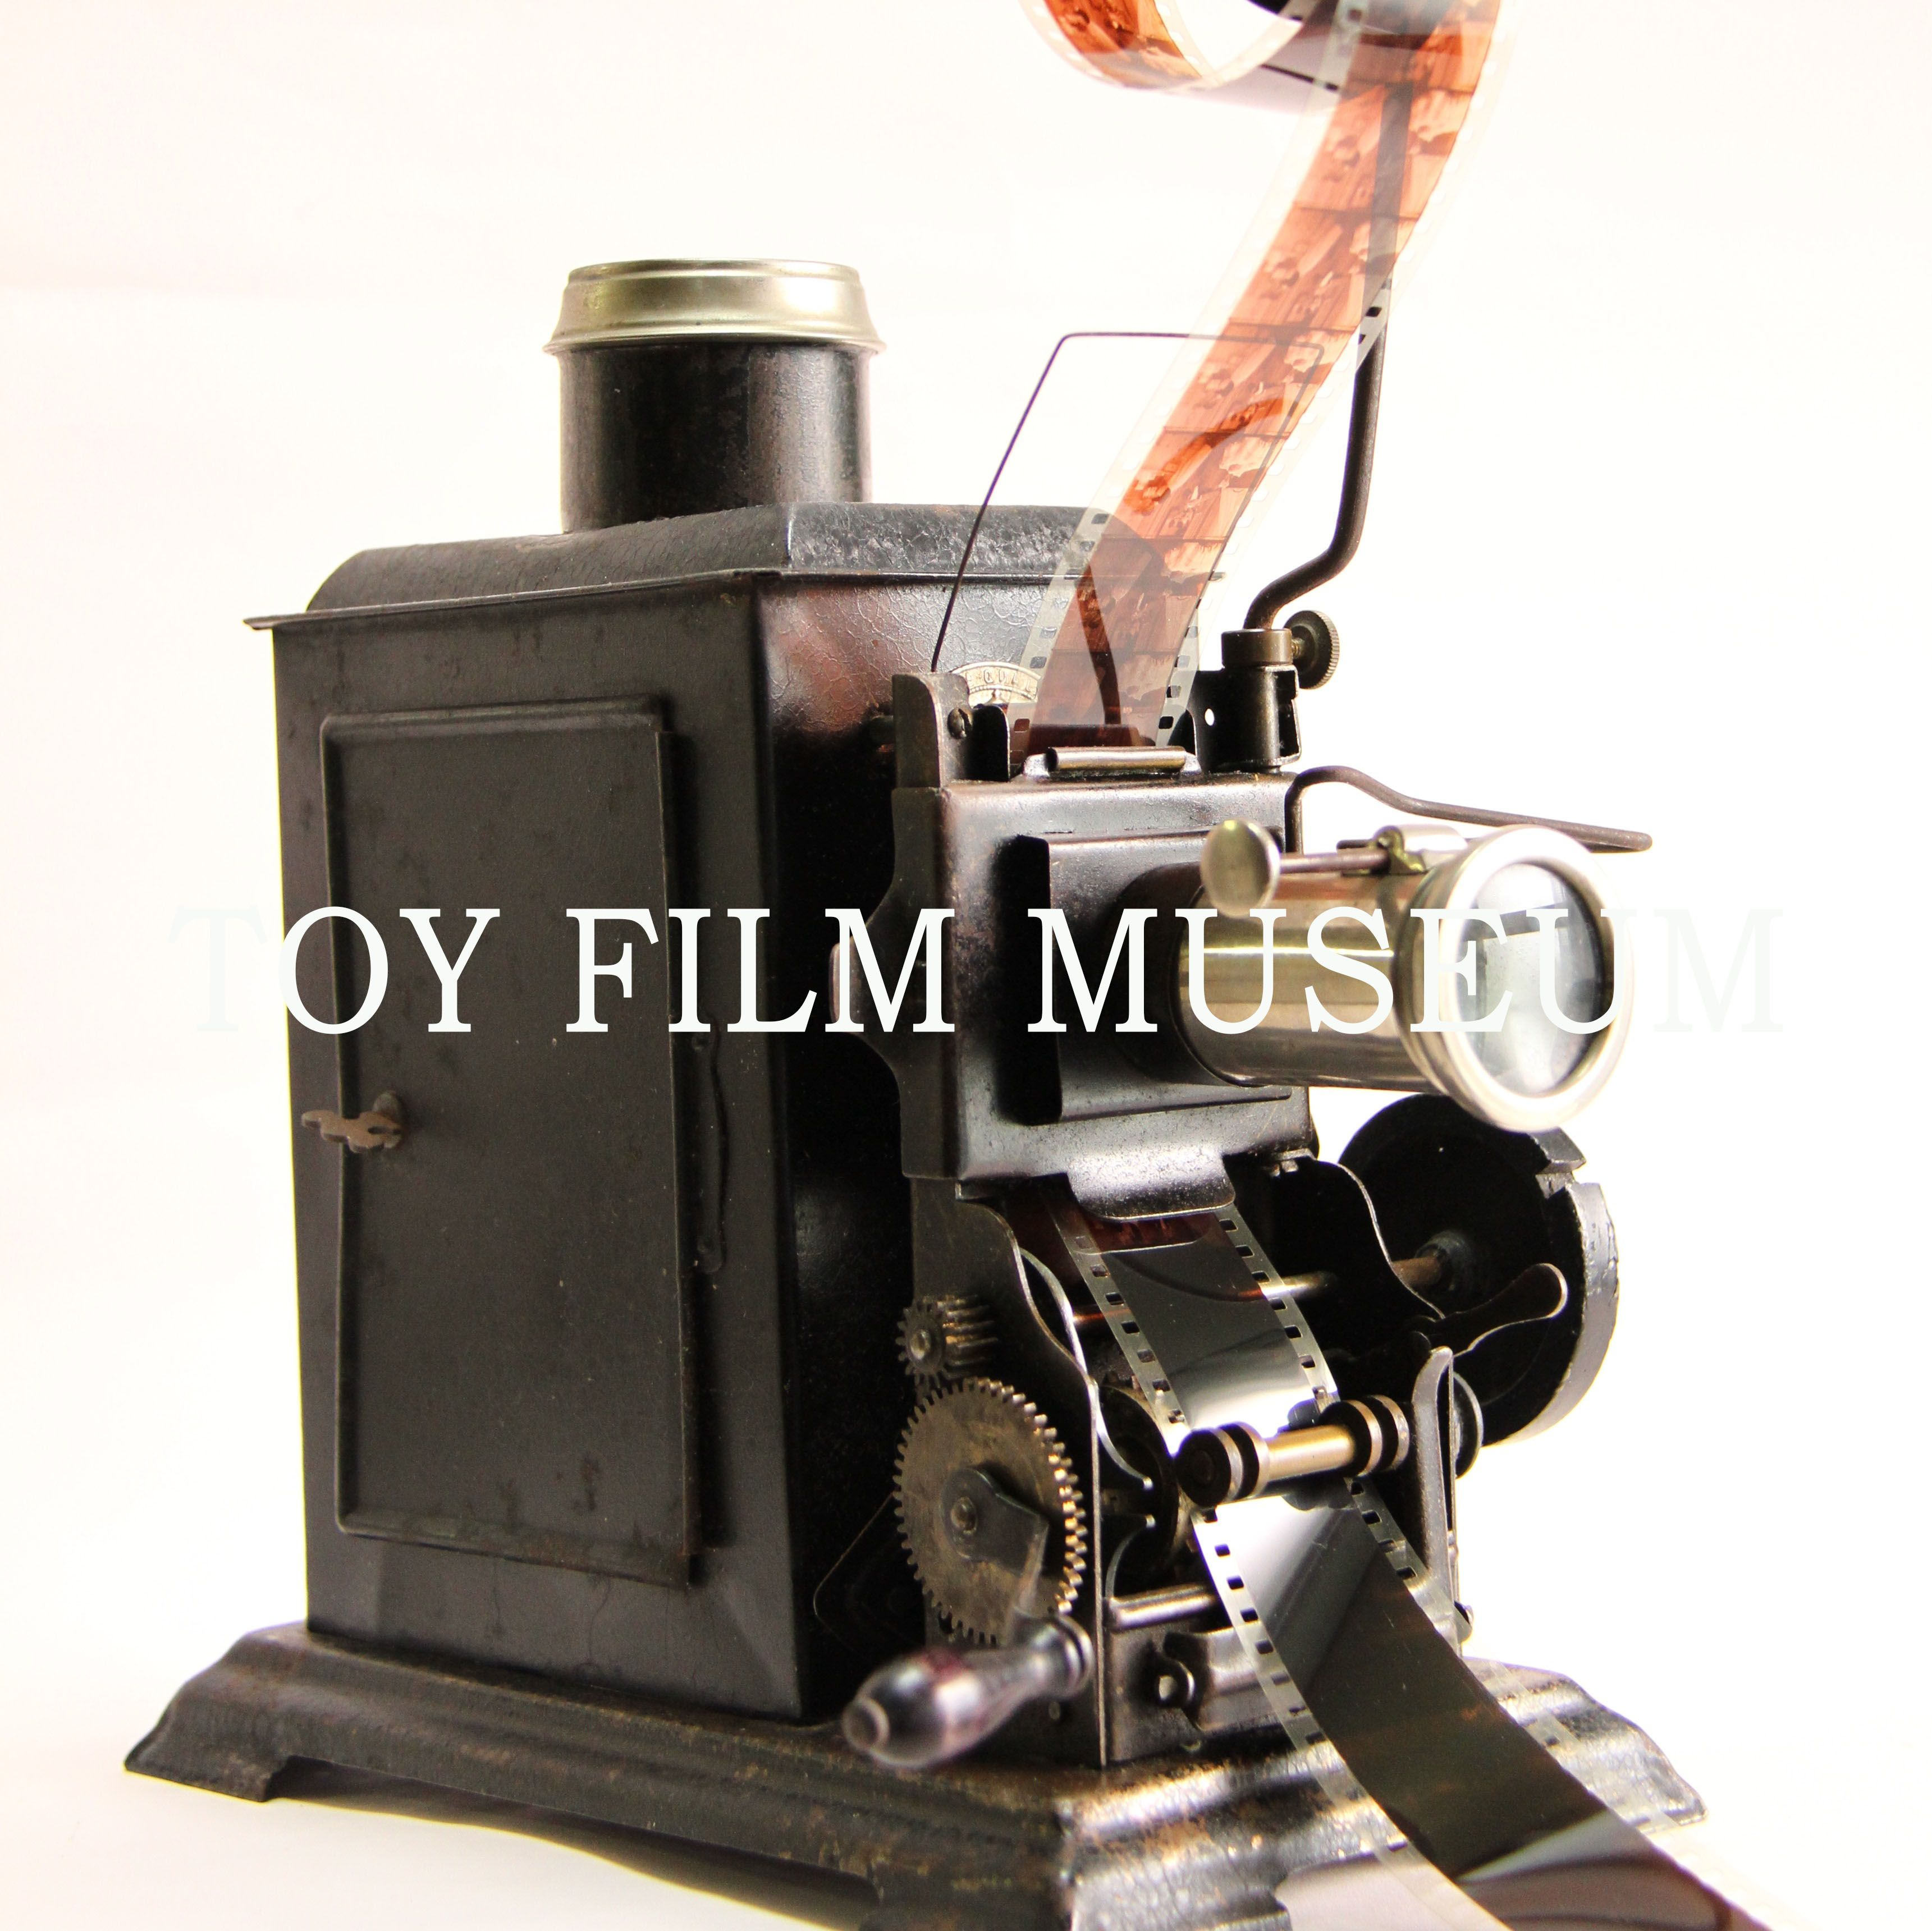 Johann Falk 35mm Projector